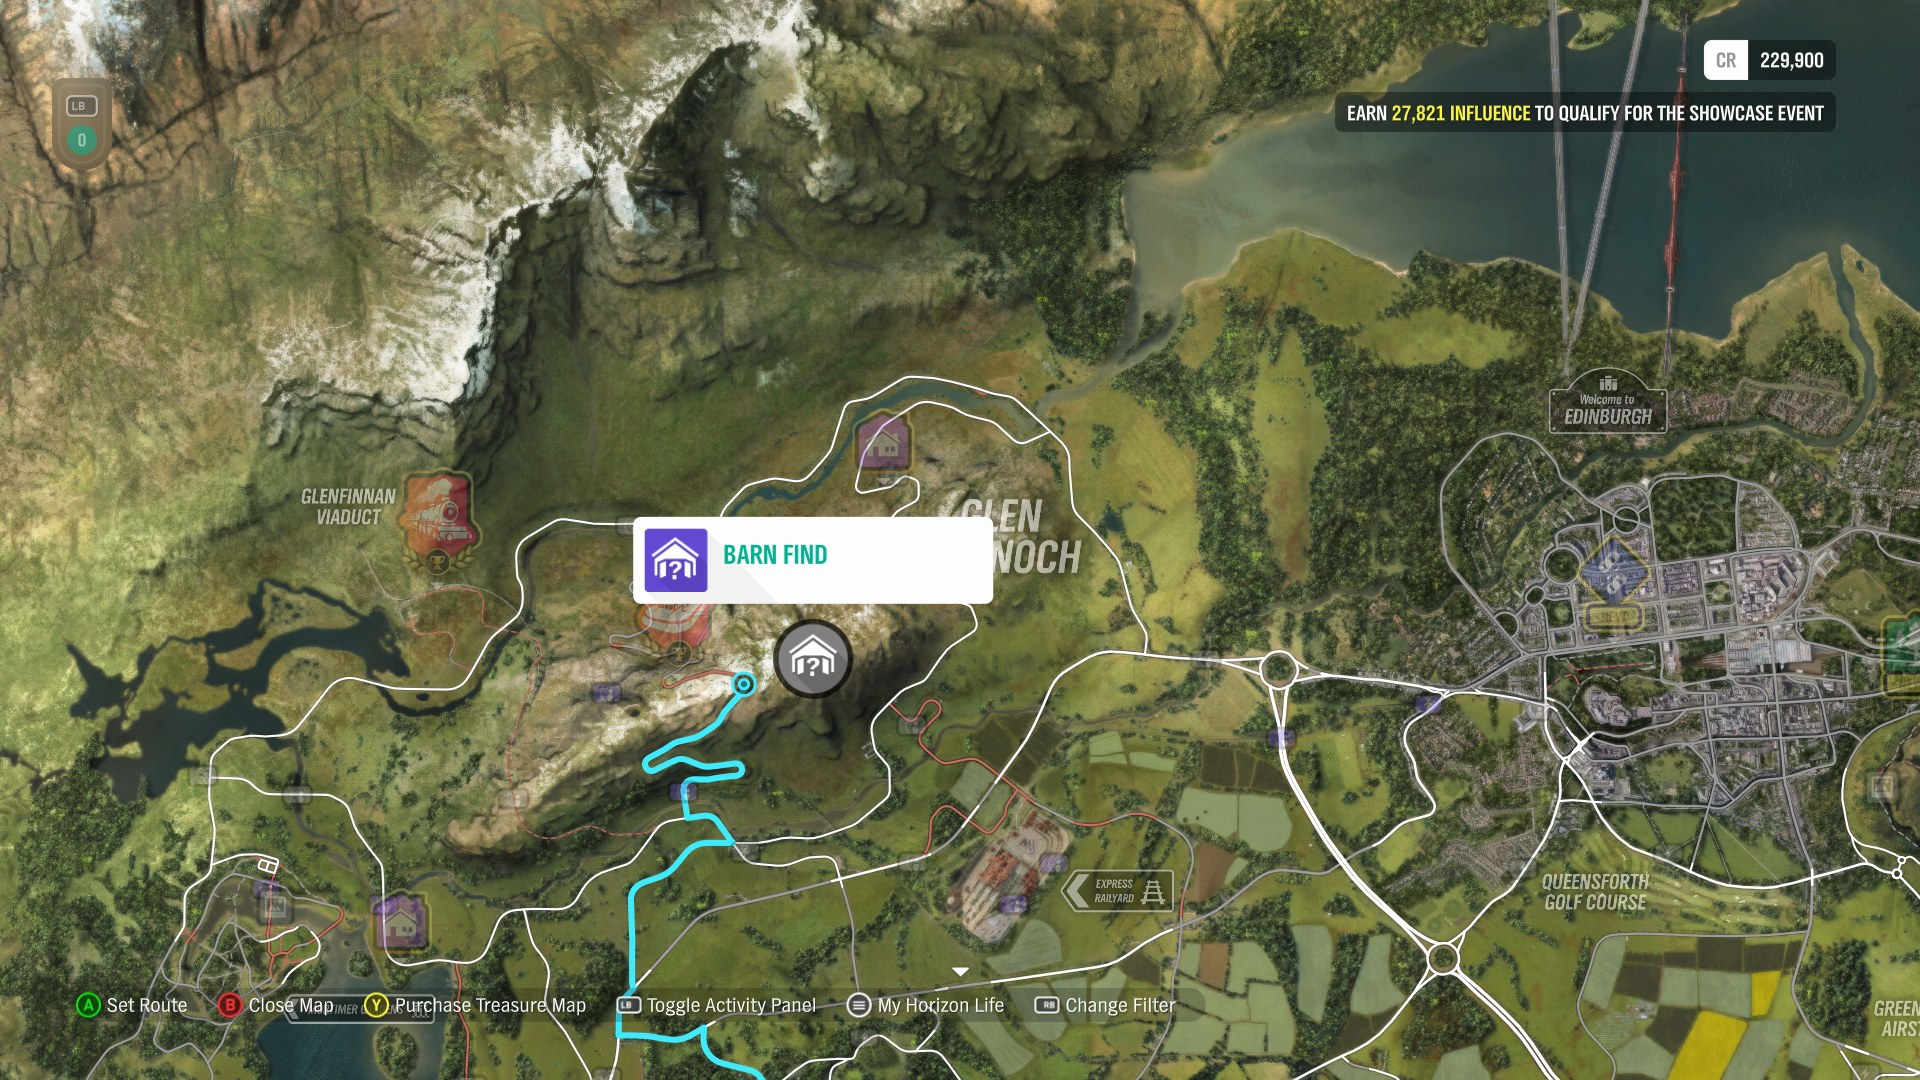 Forza Horizon 4 Barn Finds, Locations - Find Every Forza